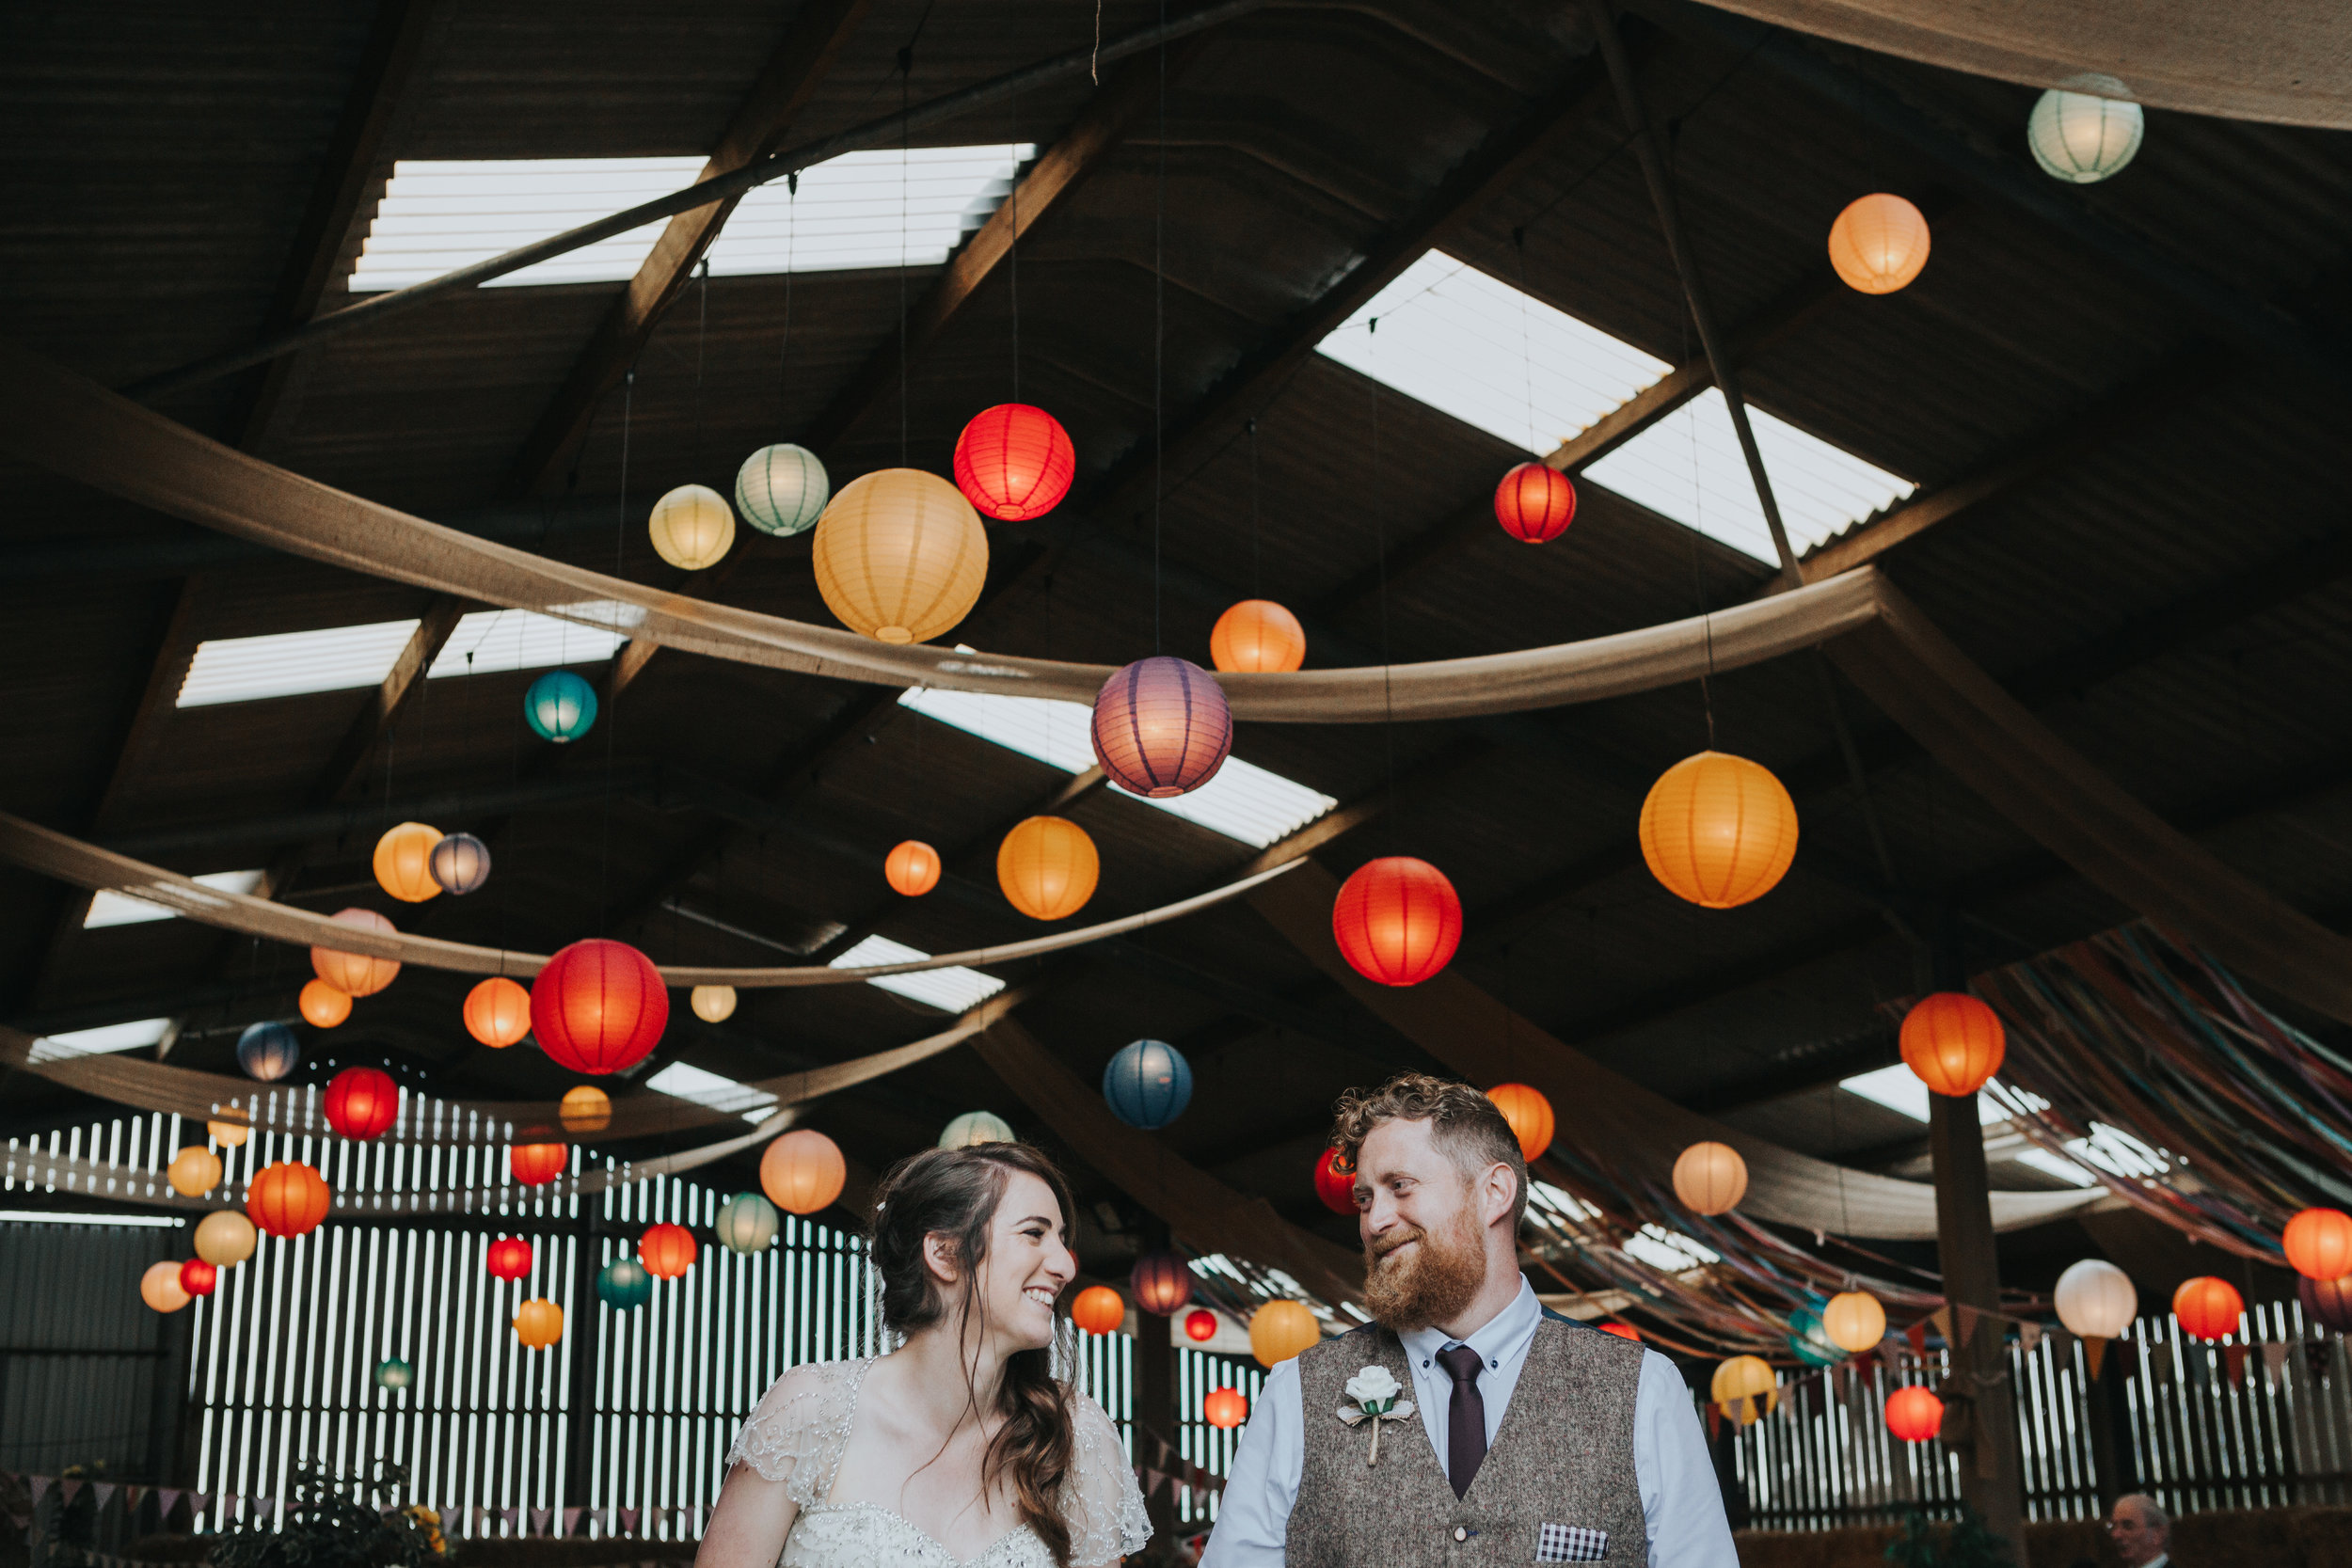 Bride and Groom stand together in front of room full of colourful lanterns that they put there together the day before